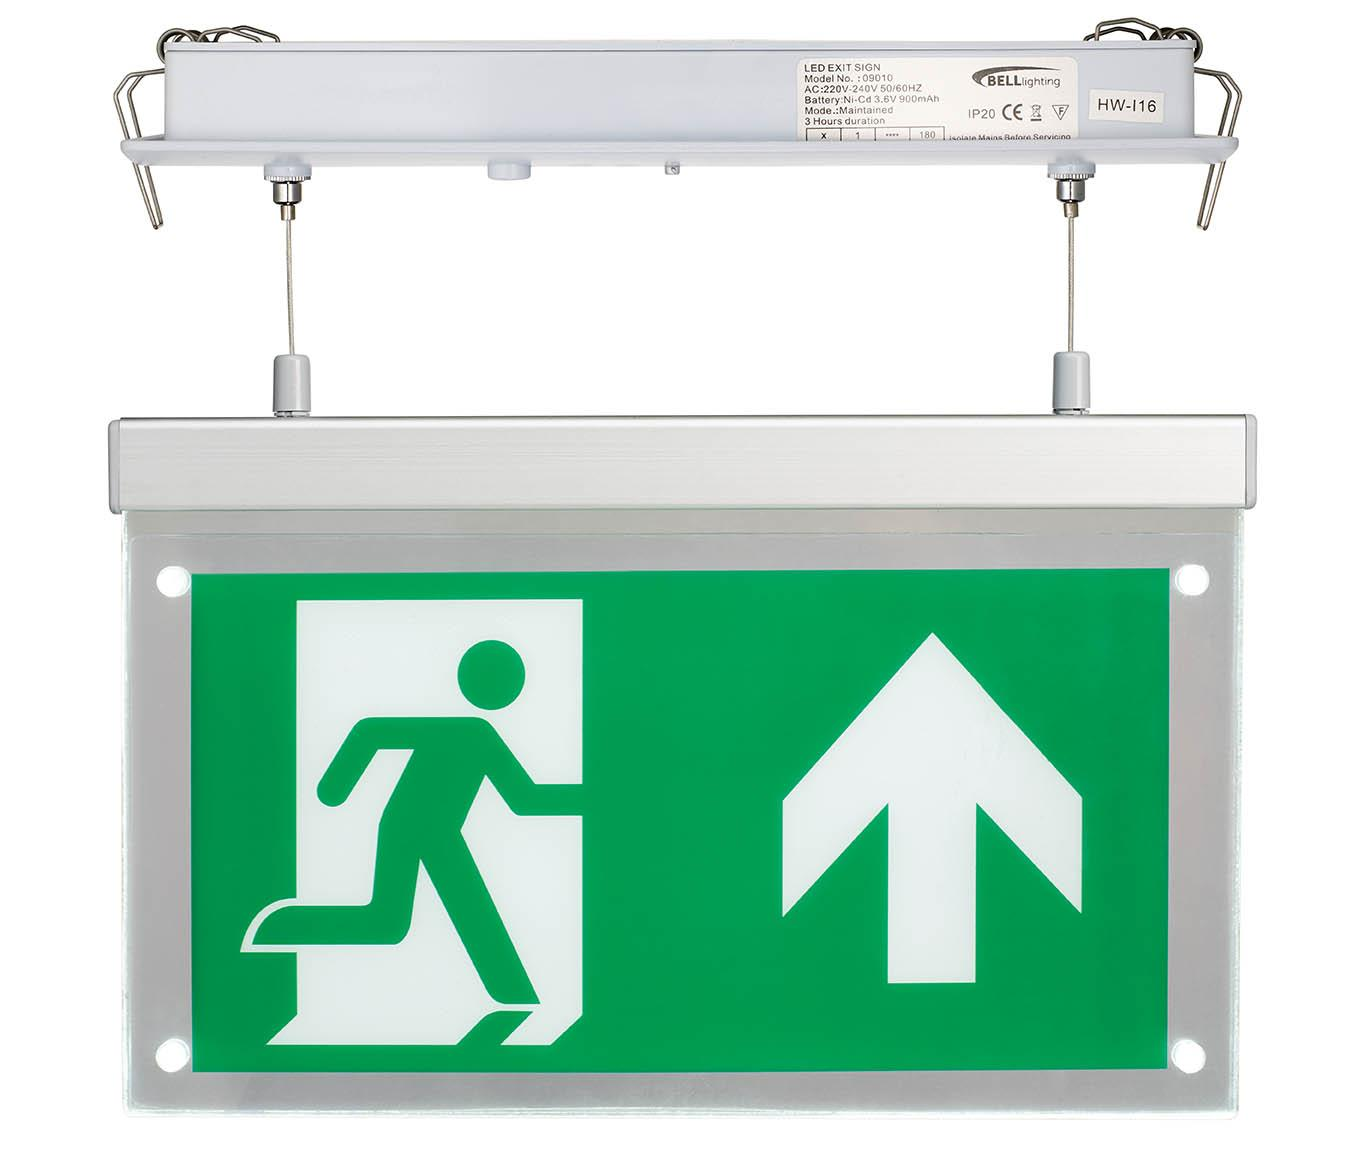 LED EMERGENCY EXIT BLADE 2.5W R M/NM RECESSED MOUNT MAINT/NON MAINTAINED